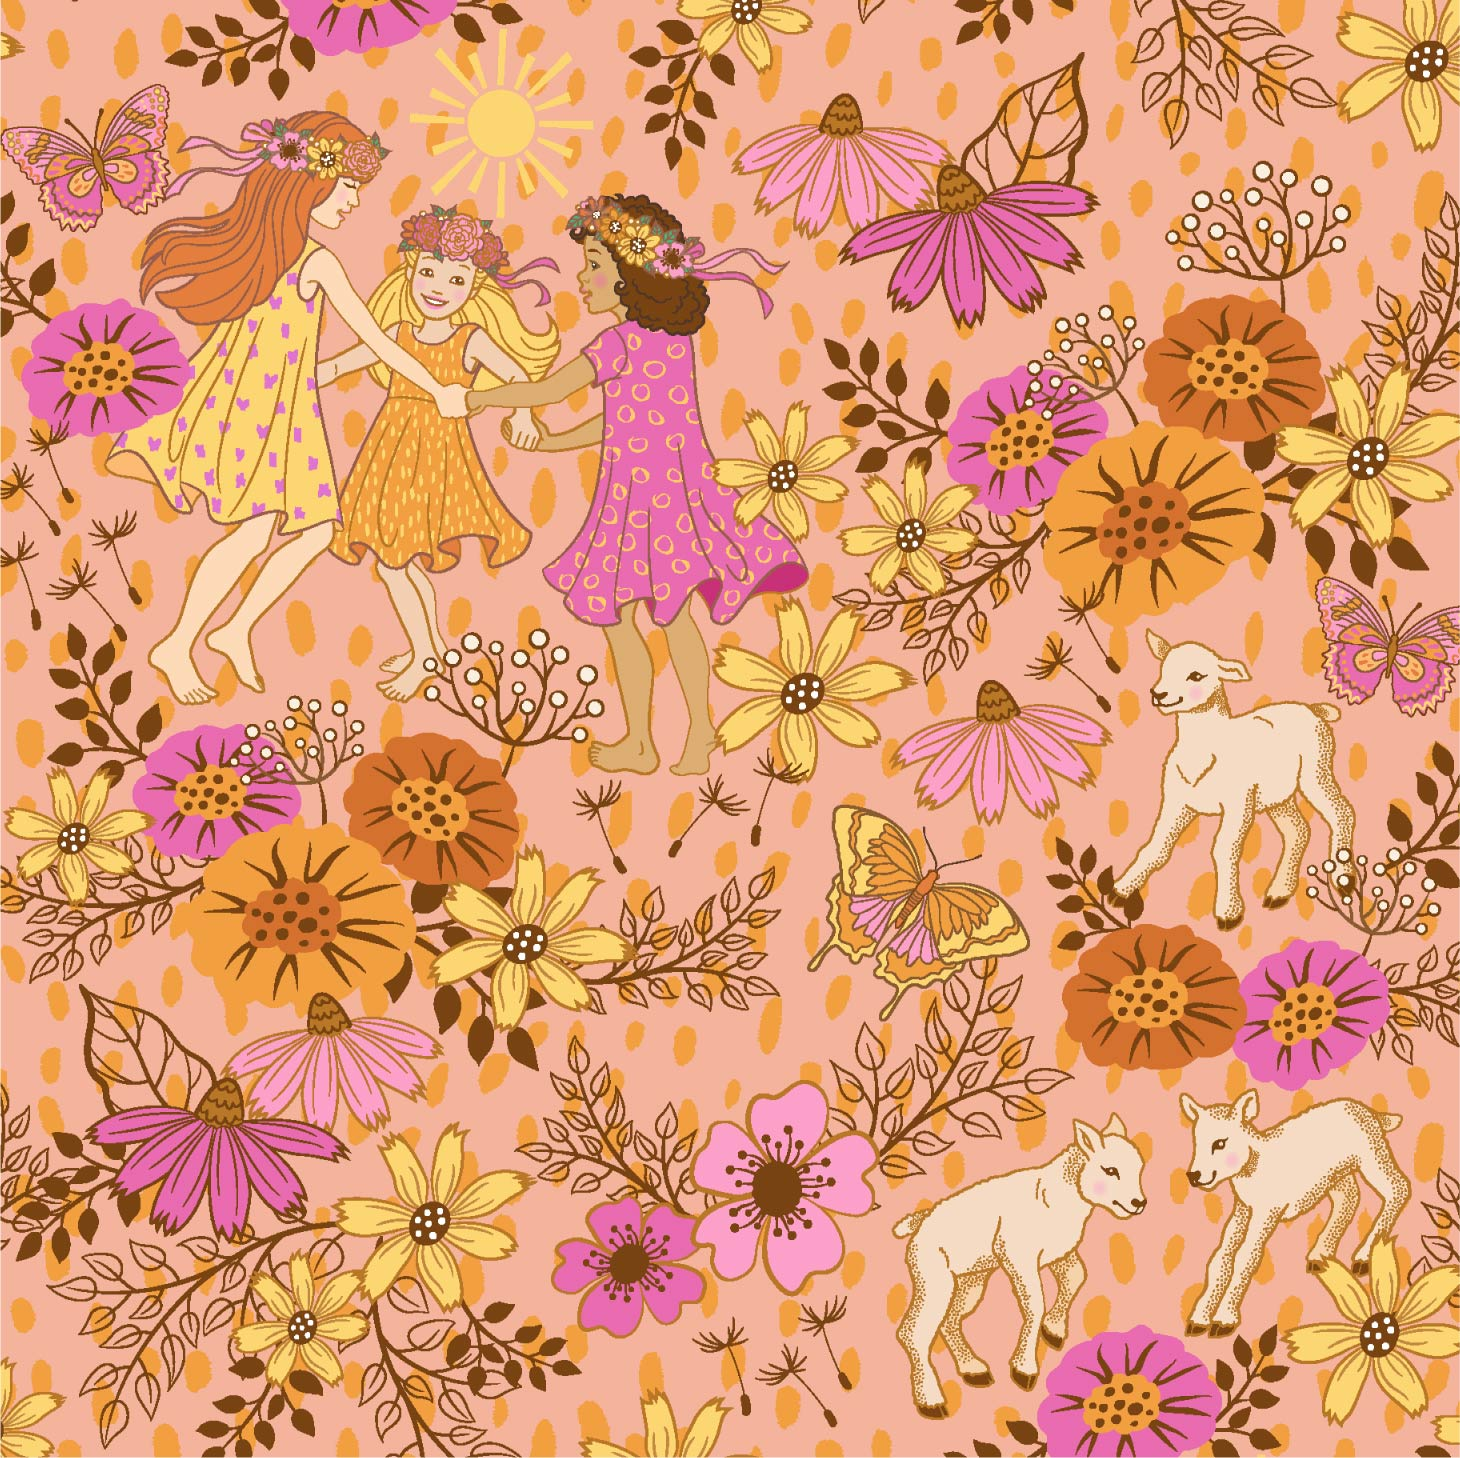 Pamela Duarte Illustration Midsummer Festival Pattern